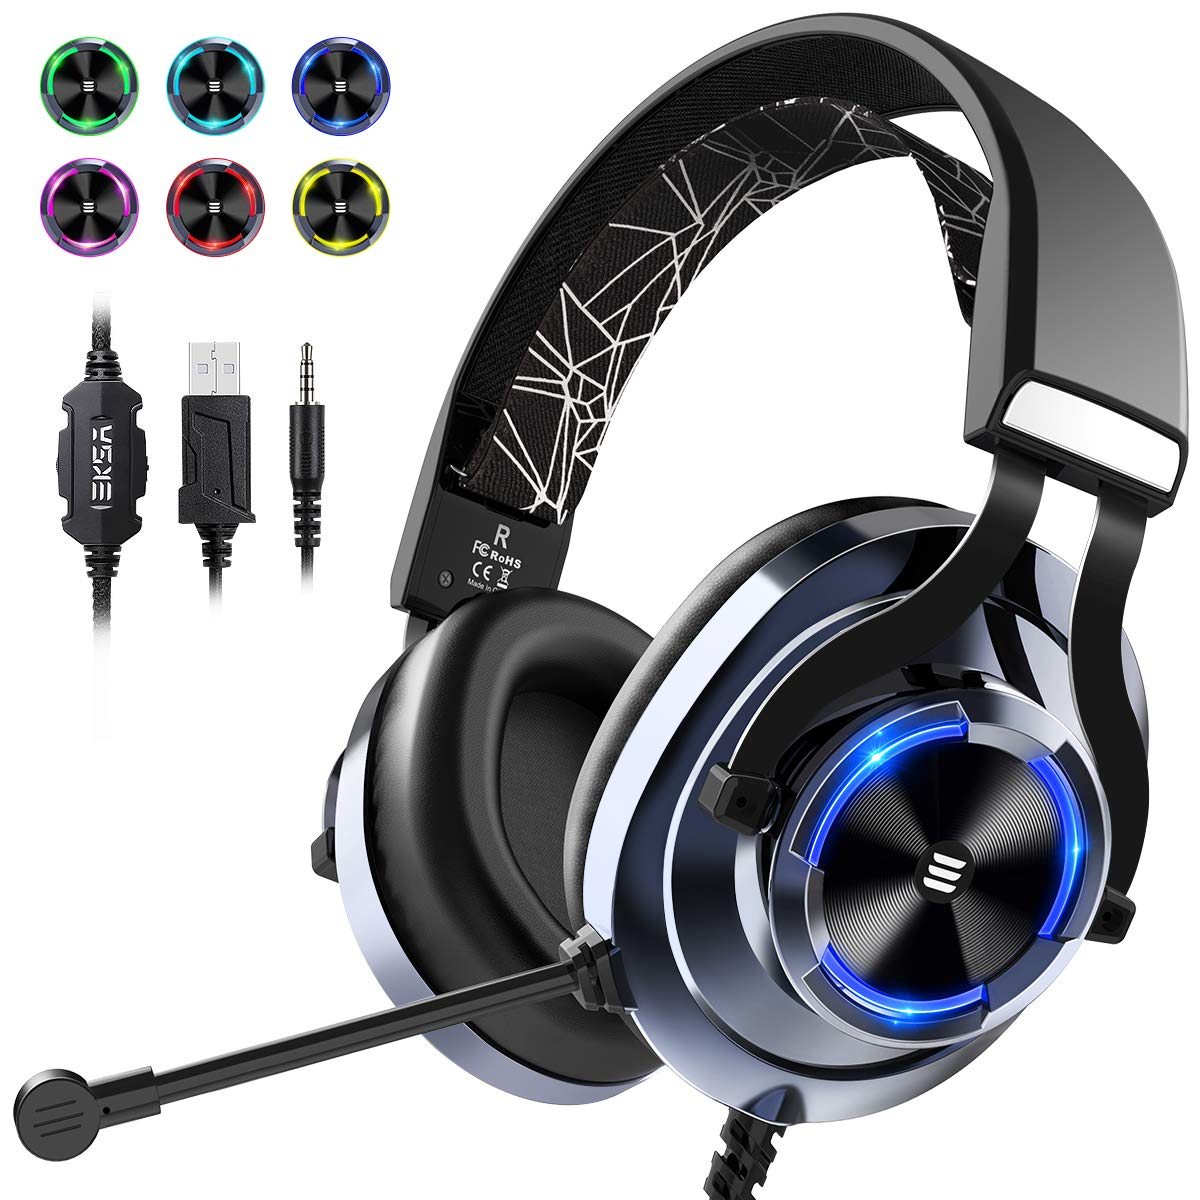 EKSA Gaming Headset PS4 Xbox One Headset with Noise Cancelling Mic RGB Light – Over Ear Gaming Headphones for PC, Laptop, Xbox One, Playstation 4, Nintendo Switch, Electroplated